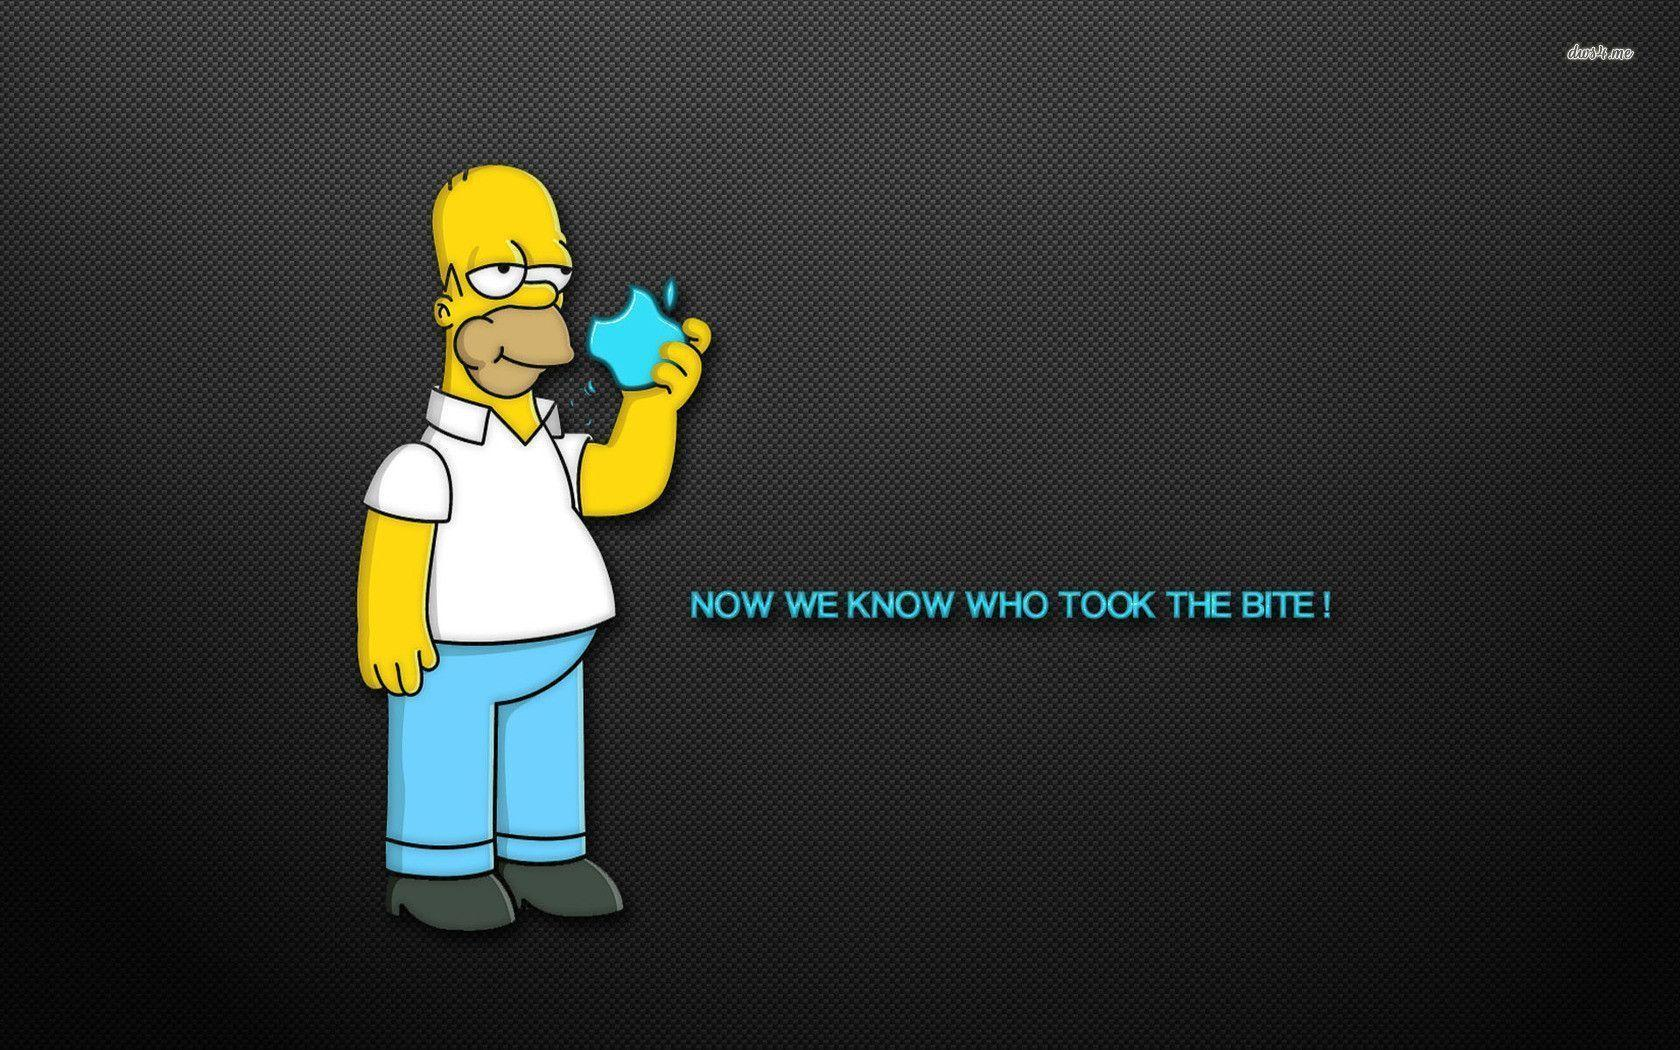 Homer Simpson - The Simpsons wallpaper - Cartoon wallpapers - #